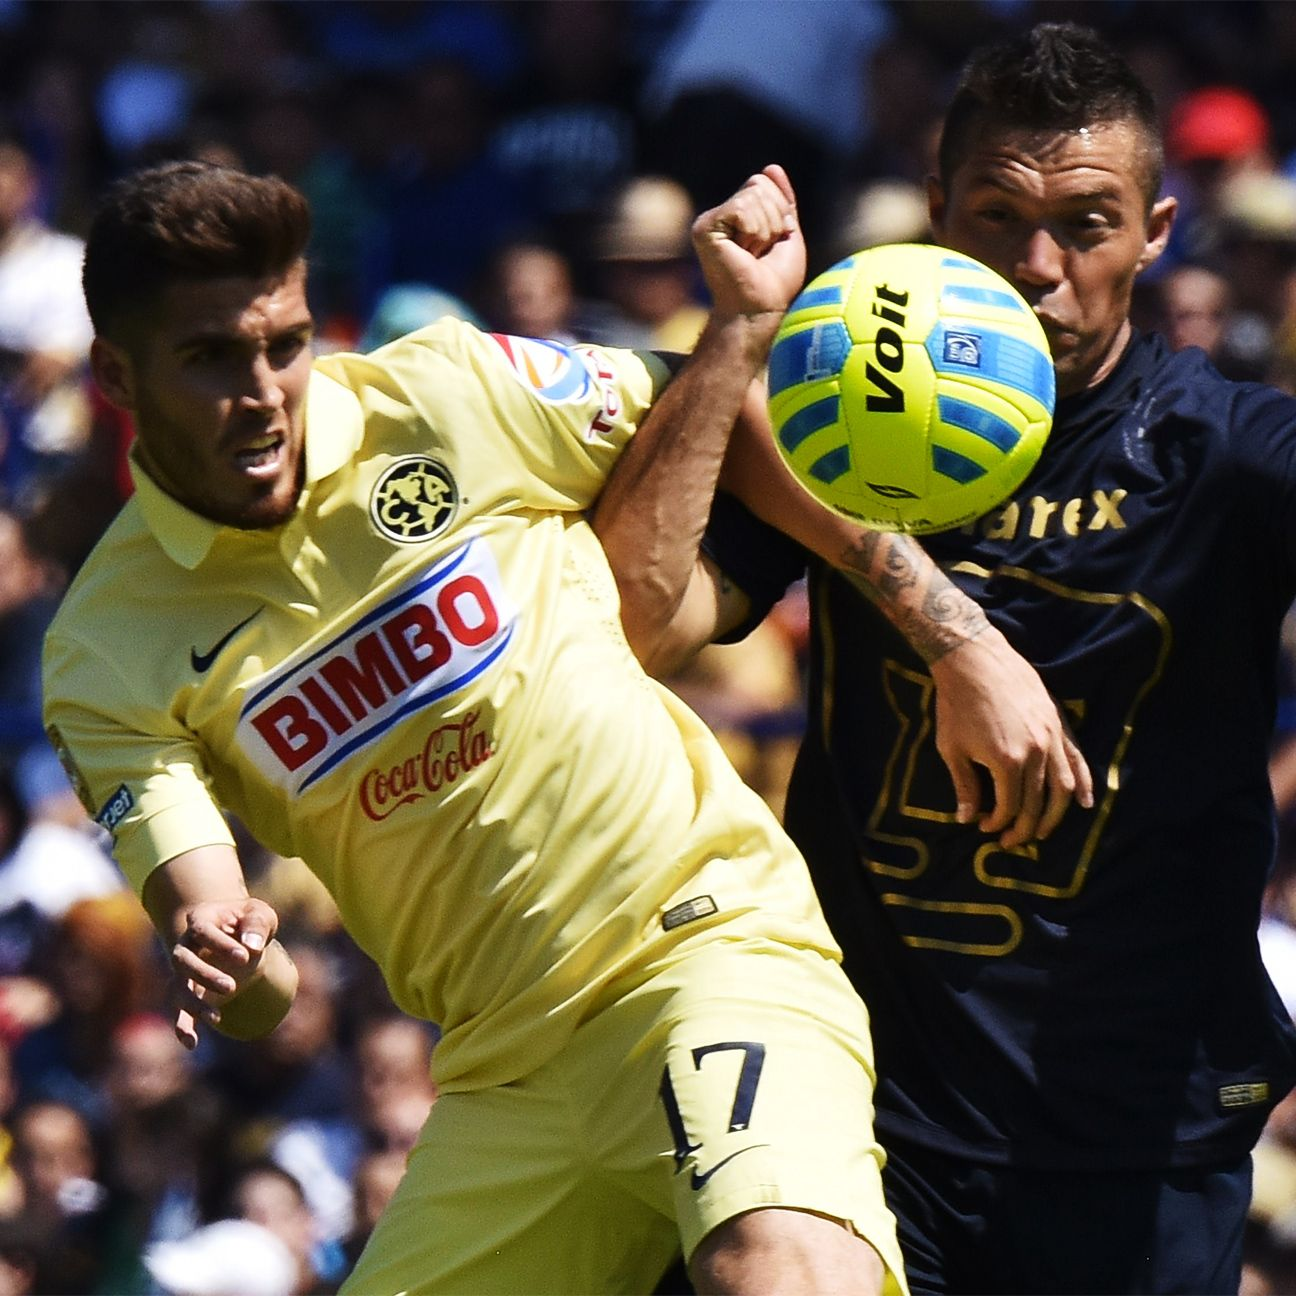 Mexico City rivals Club America and Pumas renew acquaintances on Saturday evening at the Estadio Azteca.